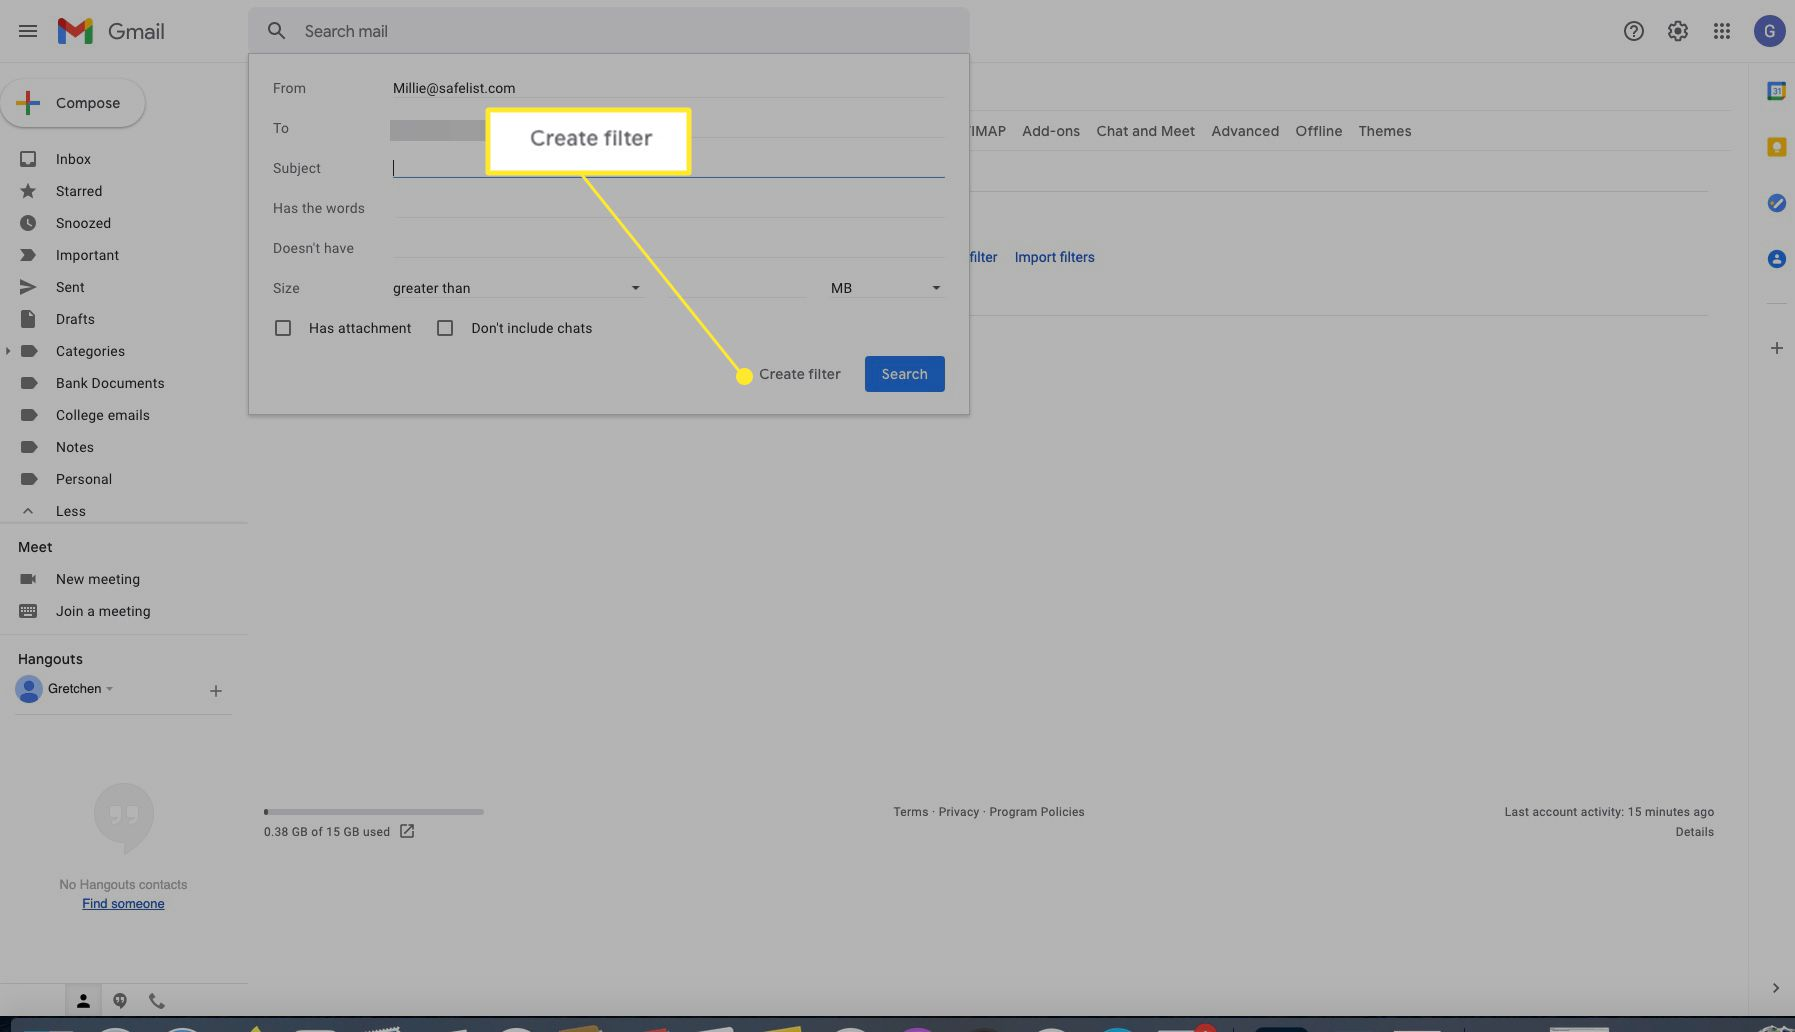 Gmail settings Create Filter dialog with